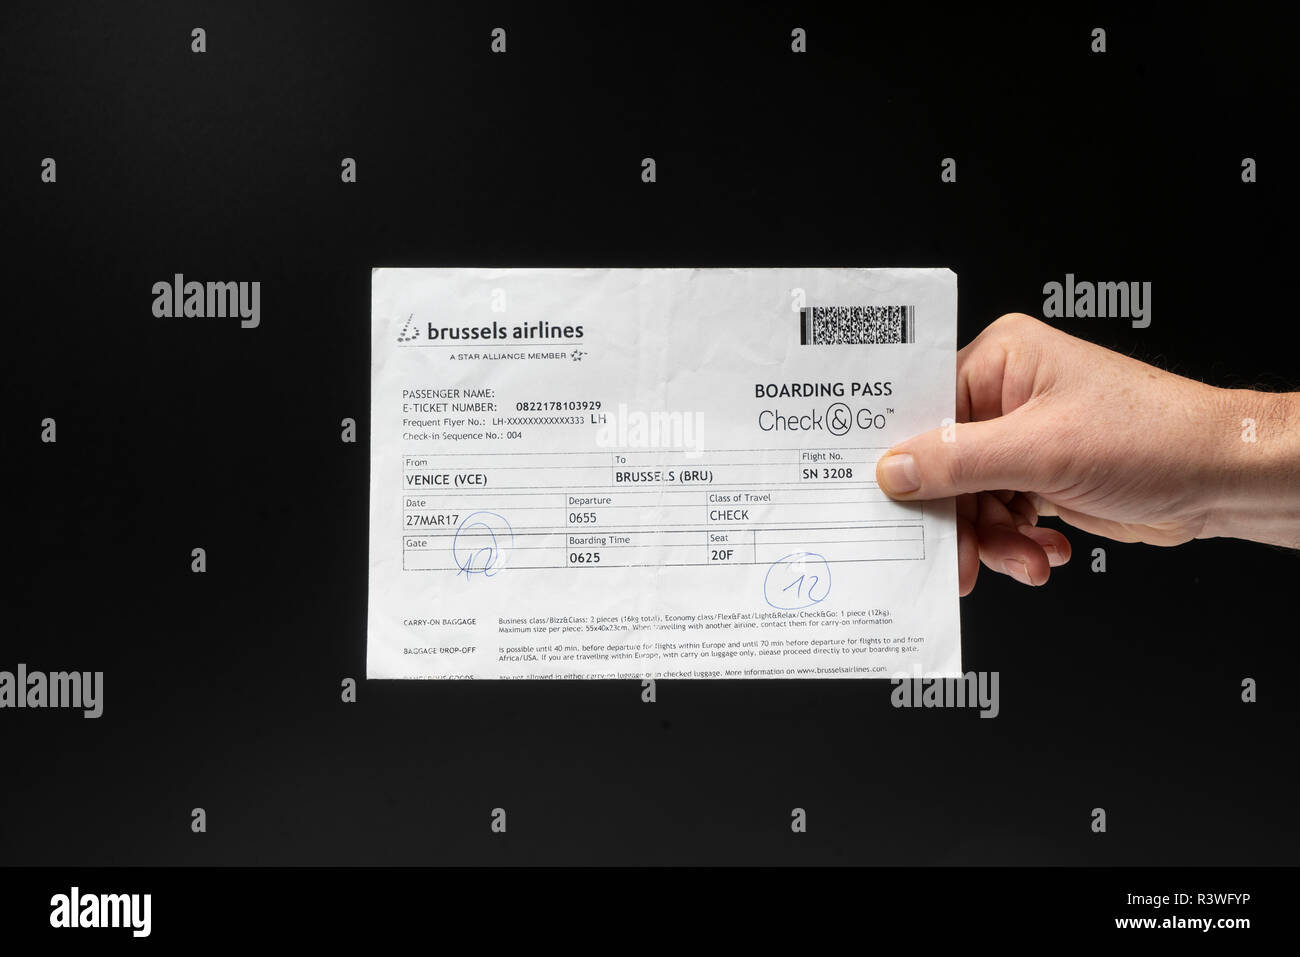 A view of Brussels Airlines boarding pass - Stock Image